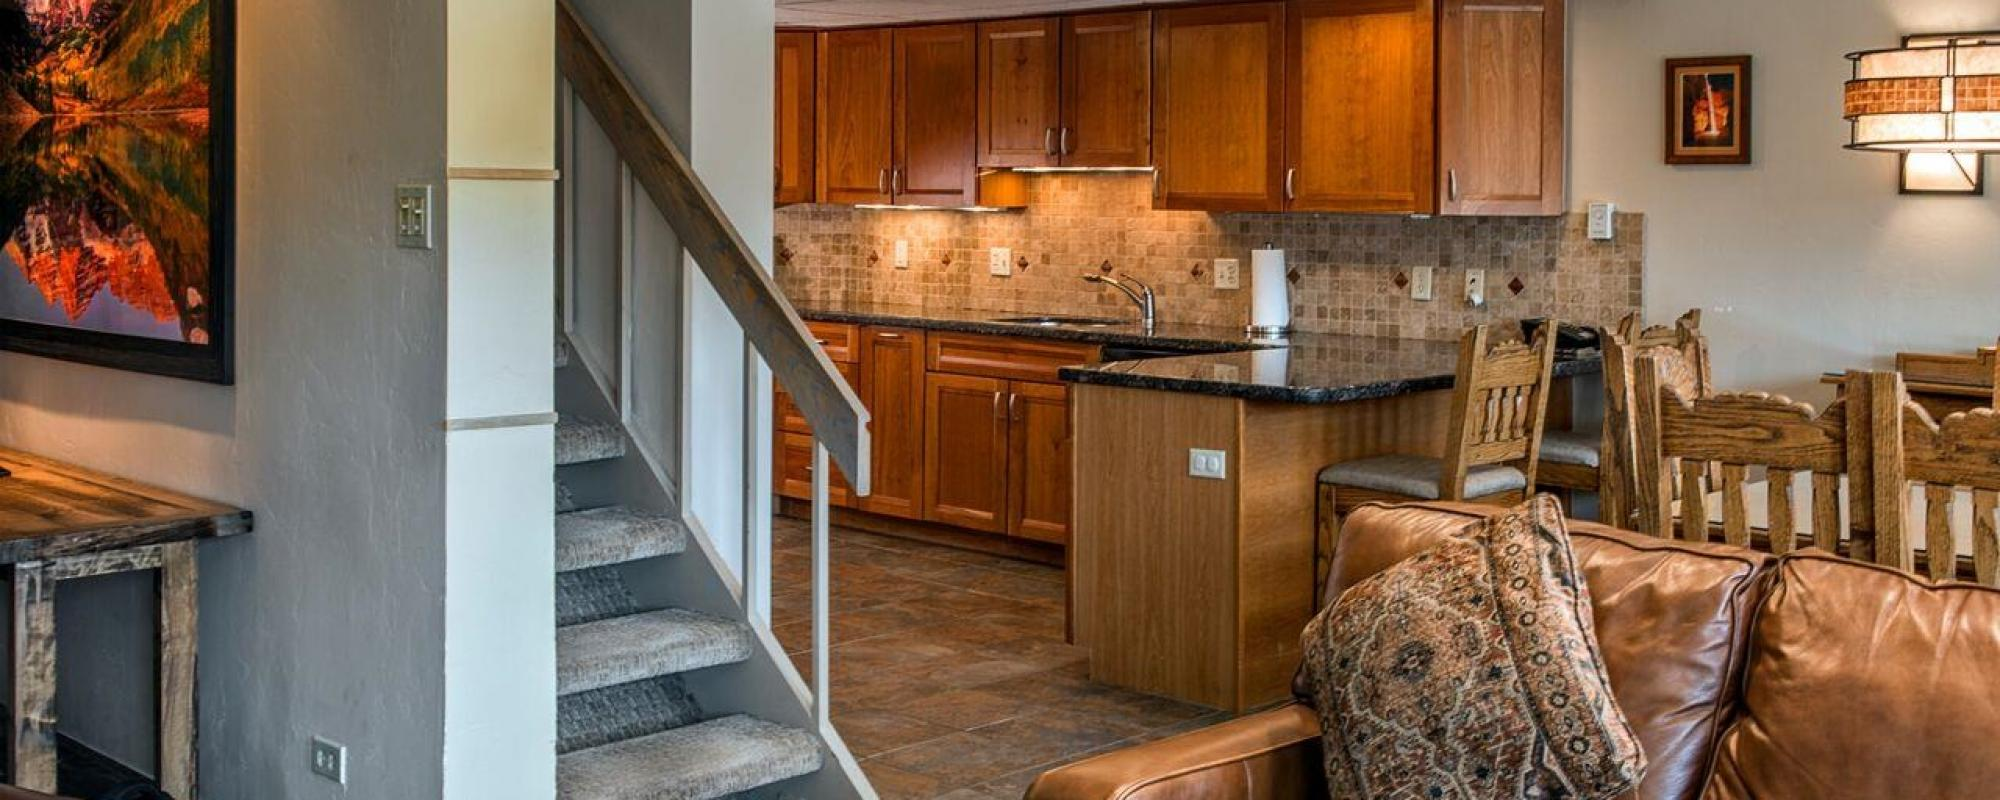 Alpenglow Executive Suite in Breckenridge